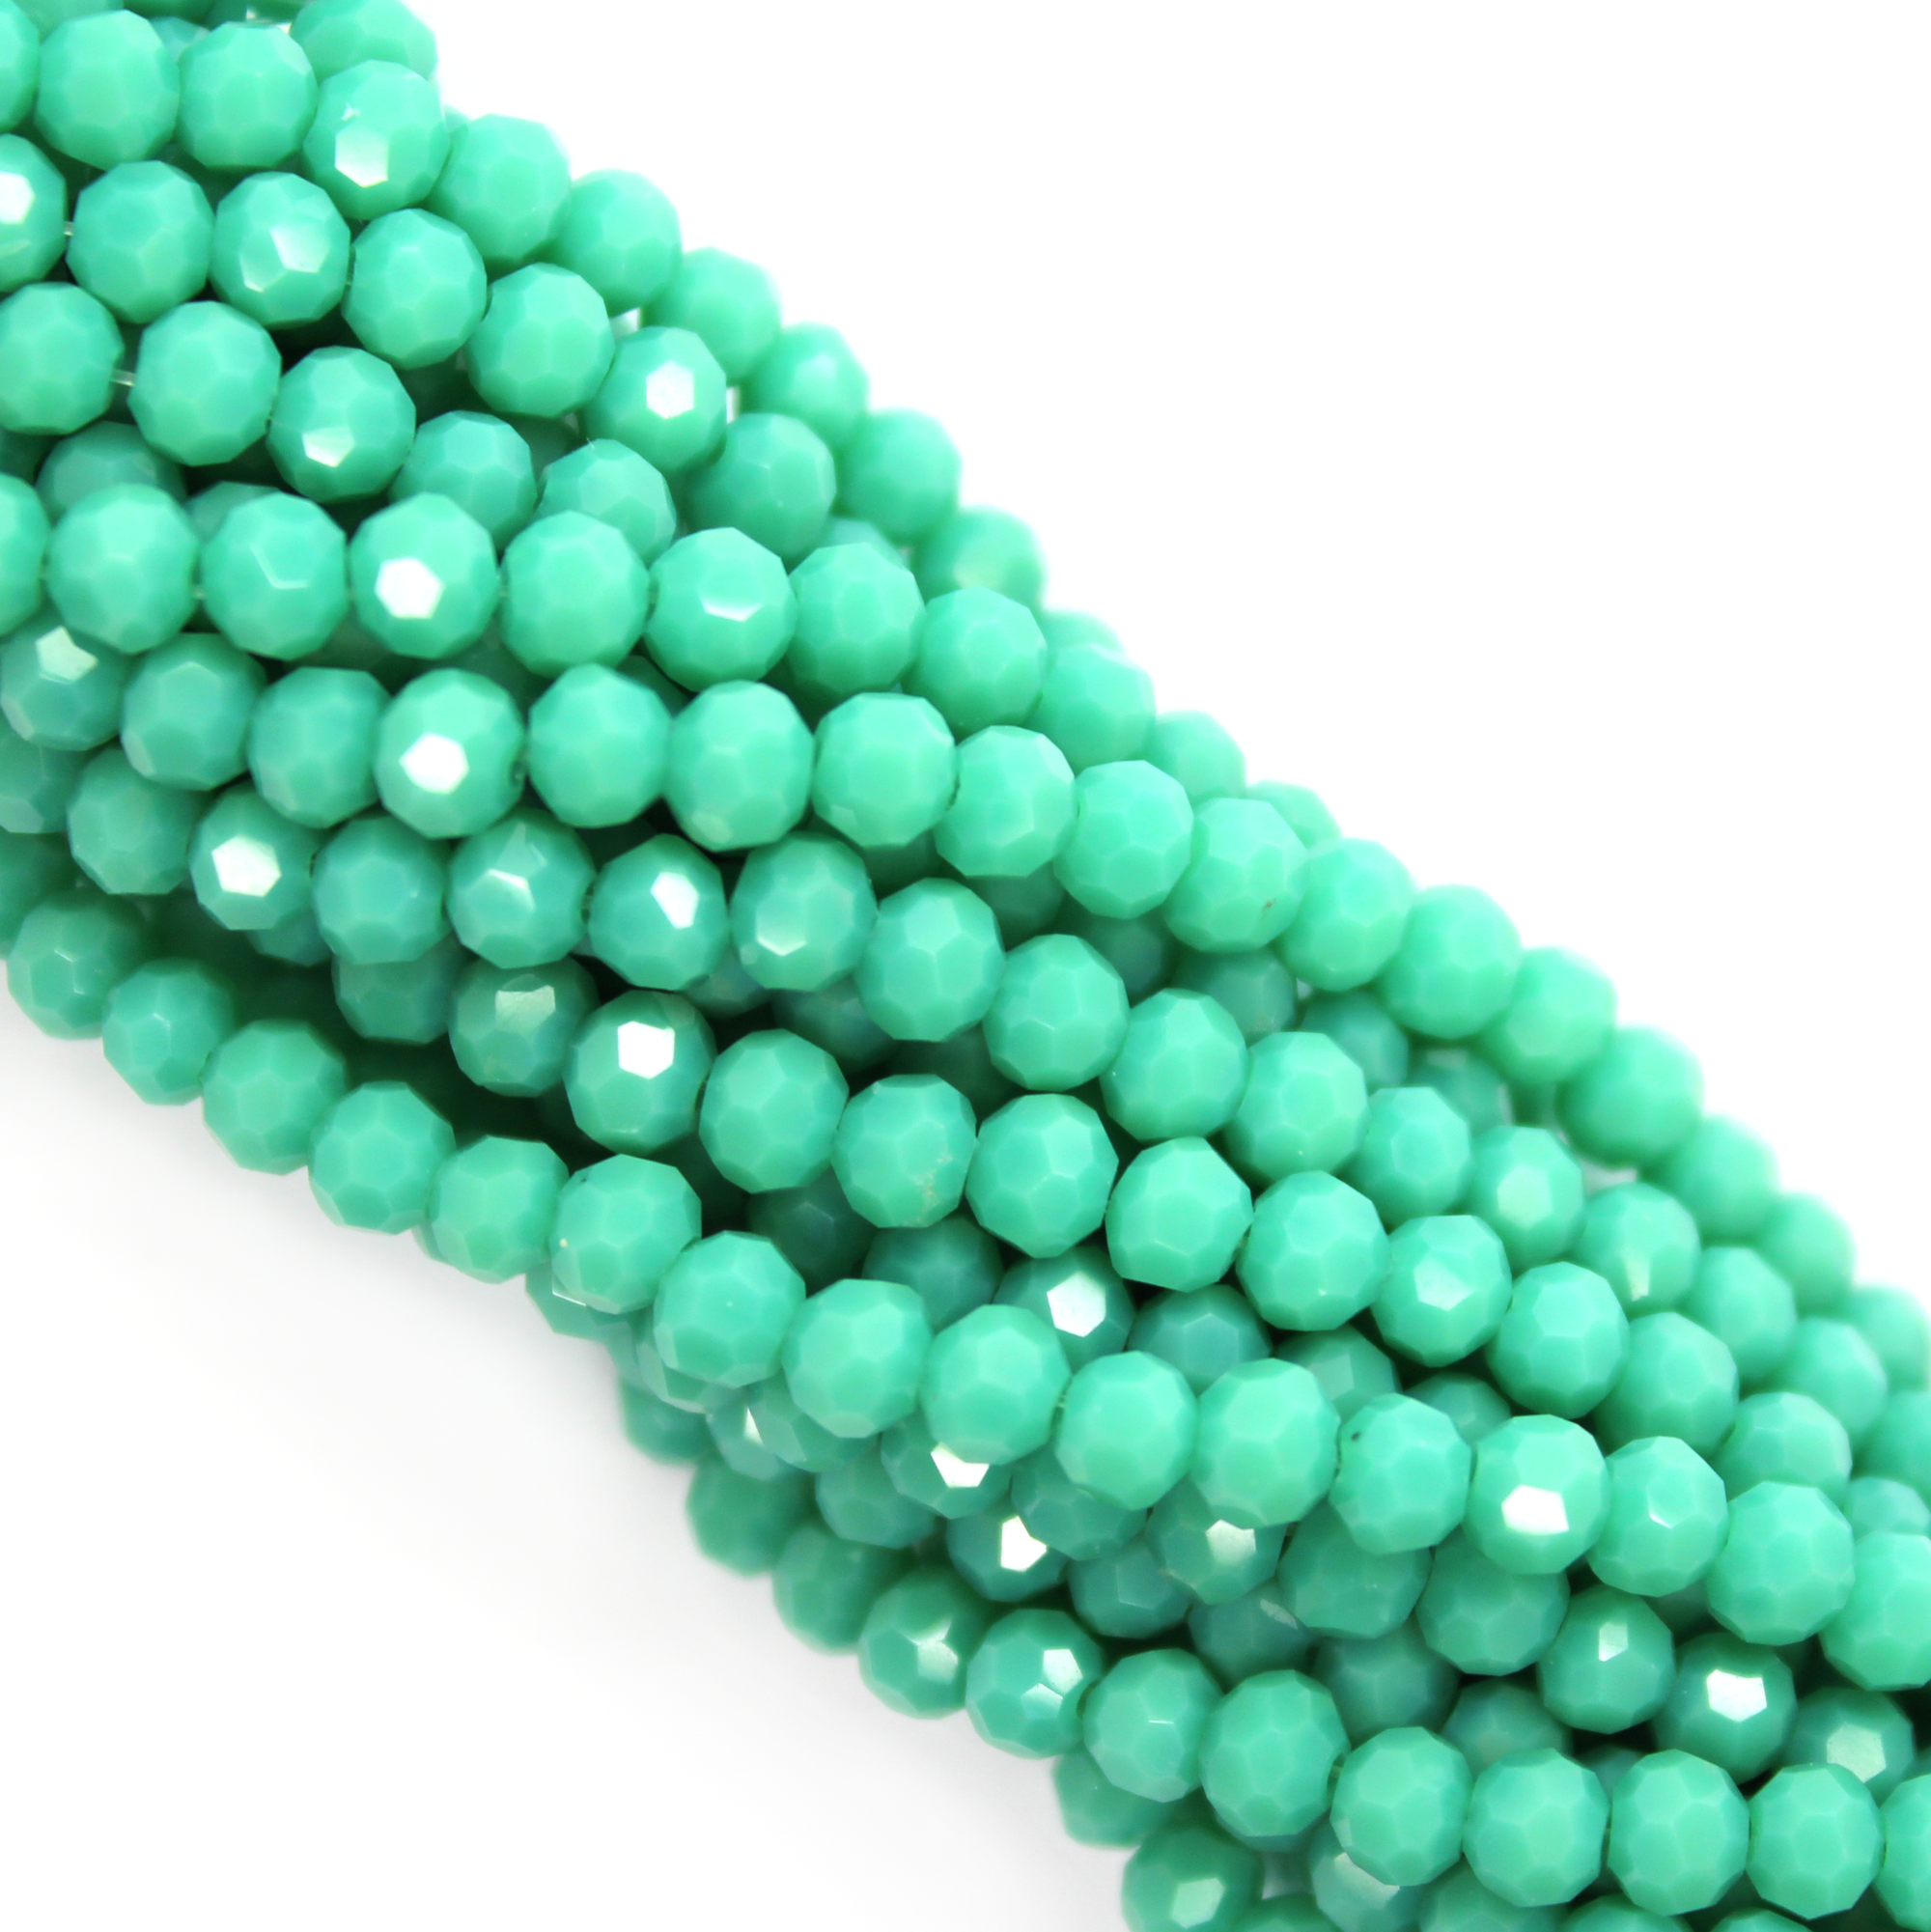 Chinese Glass Crystal, Round, Seafoam Green Opaque, 3mm, 190 pcs per strand